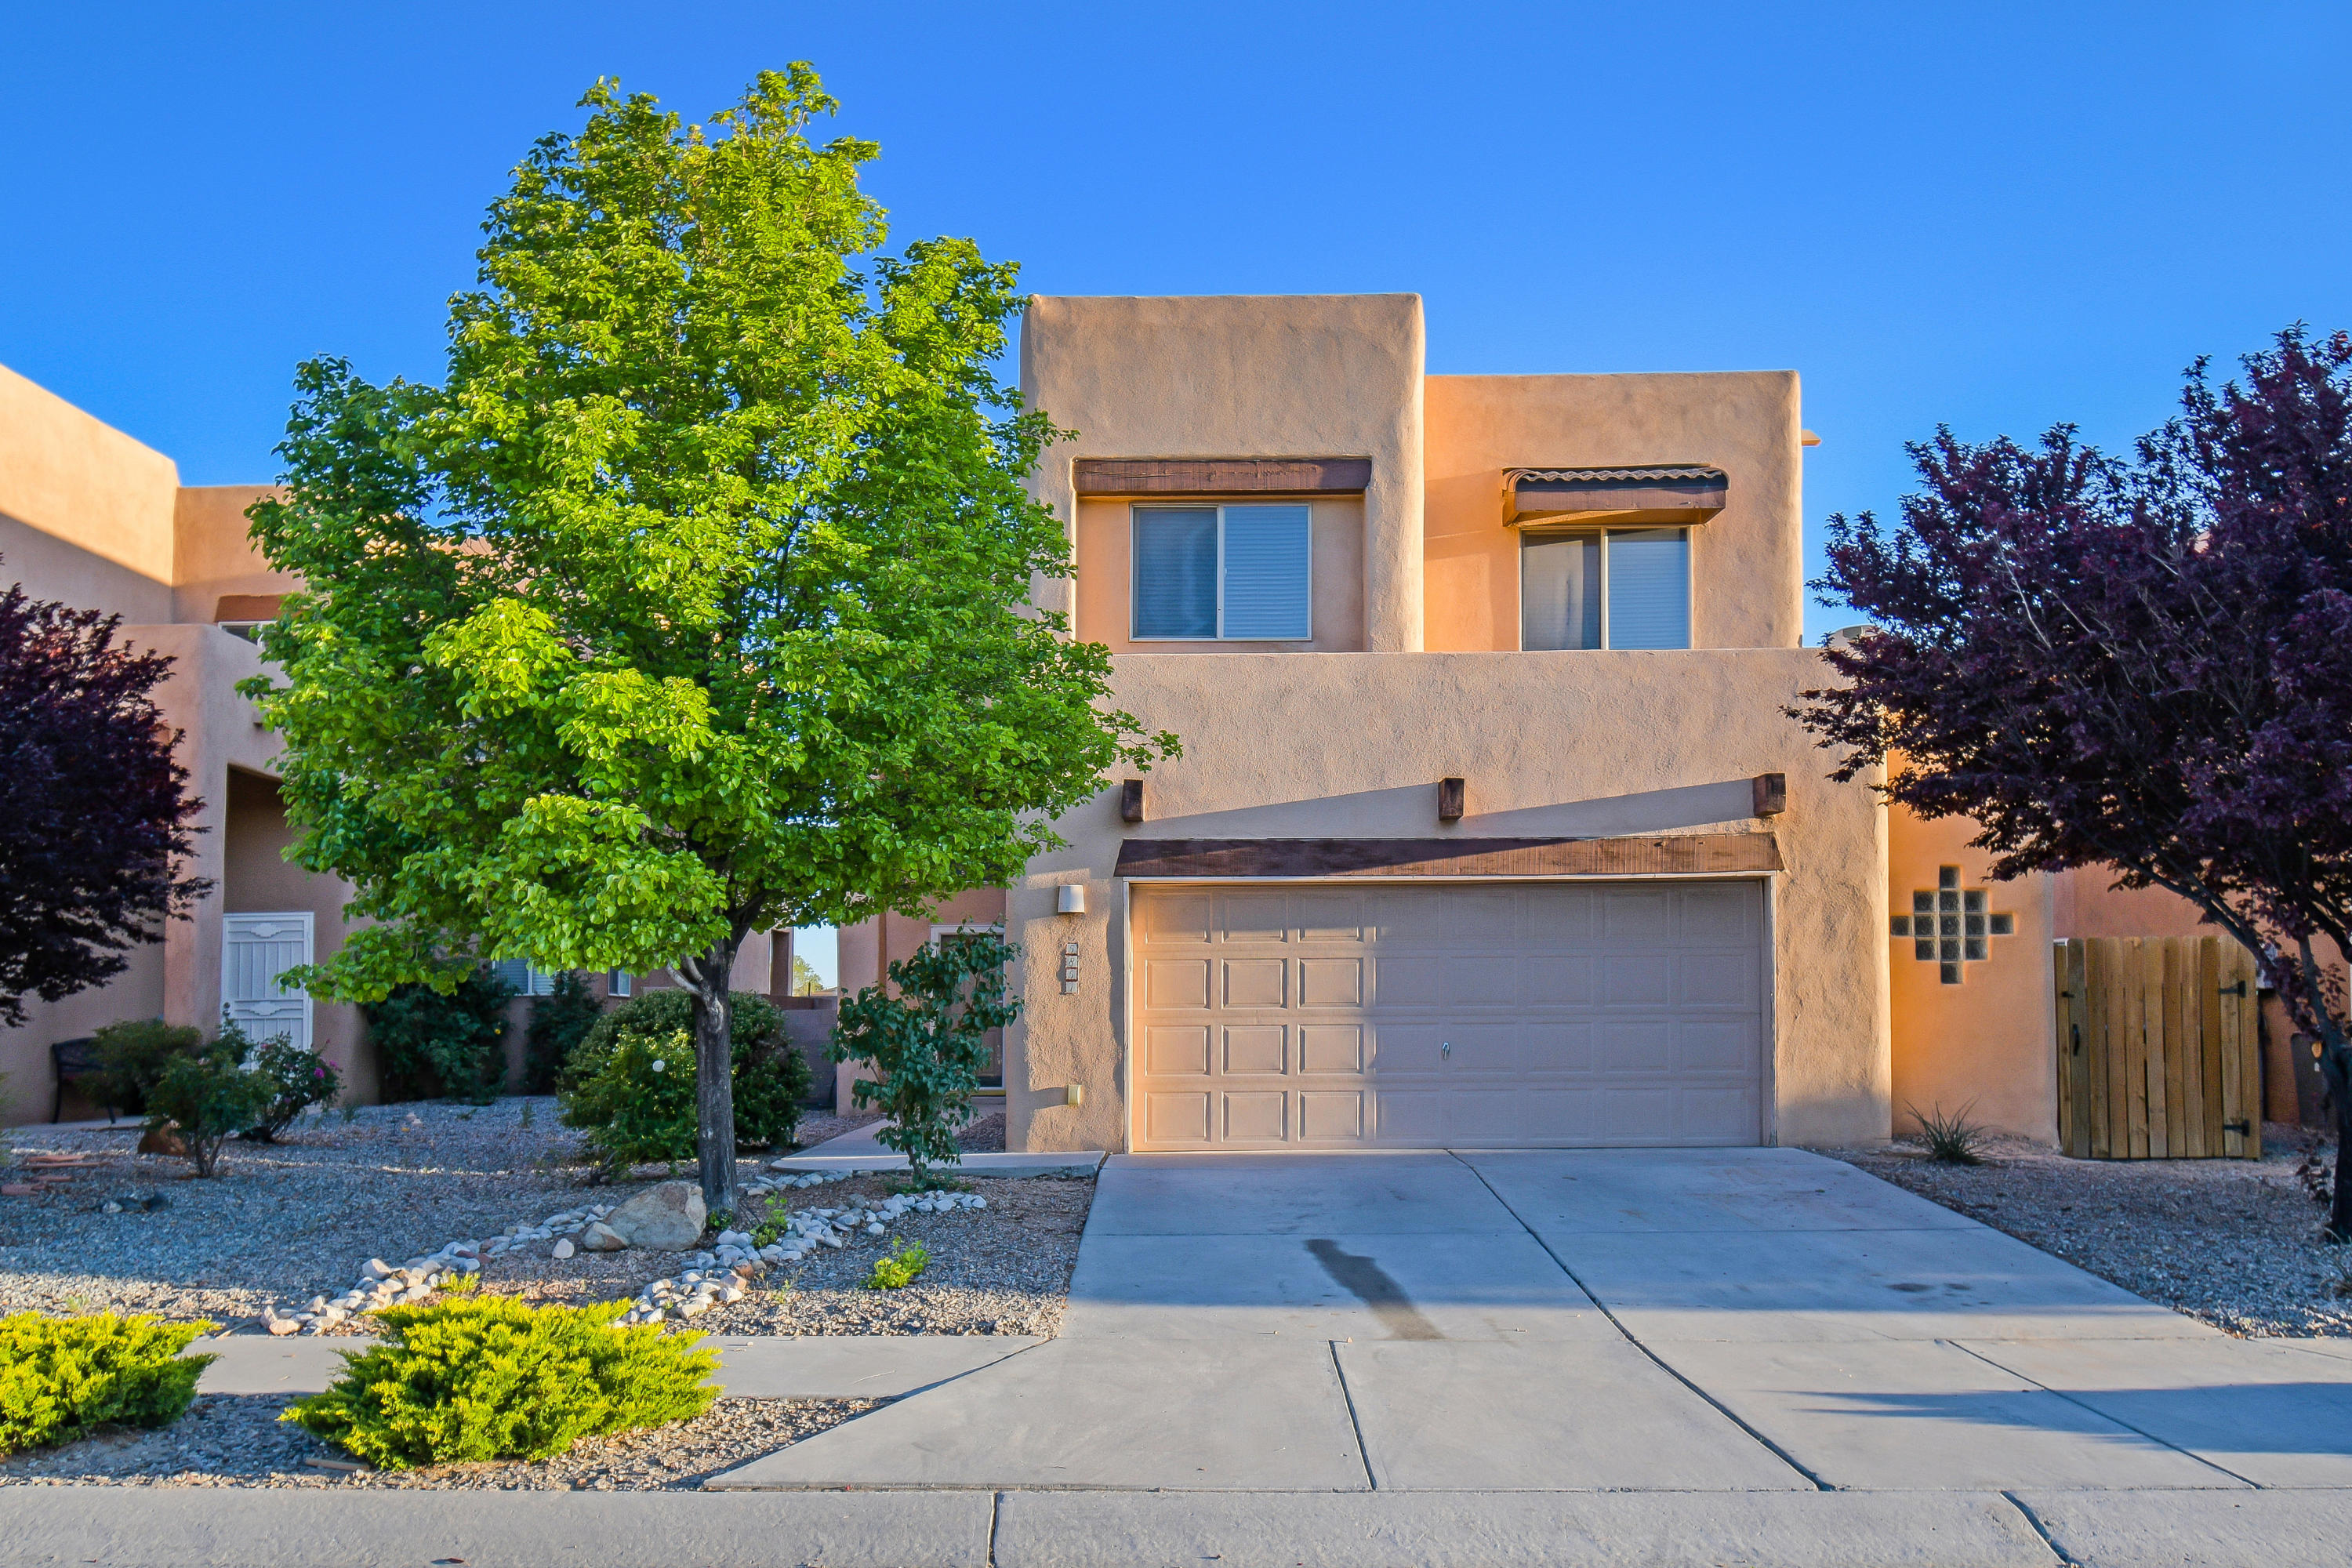 1st Showings are Friday at Noon. Open House, Saturday 5/8 from 11 am - 2 pm!  Welcome to Adobe-style Fuller Homes in Paradise Hills! This Three bedroom home with bonus loft space features an open floor plan with close access to Paradise Hills Park. Beautiful wood laminate flooring! Spacious Master suite with private balcony! Spa-like Master Bathroom with soaking tub, separate shower, and large walk-in closet!  Covered Patio outback, storage shed, and room to make it into your very own backyard retreat! Spacious Garage with room for extra storage or workshop area. Take a virtual walkthrough tour today or schedule a private showing!